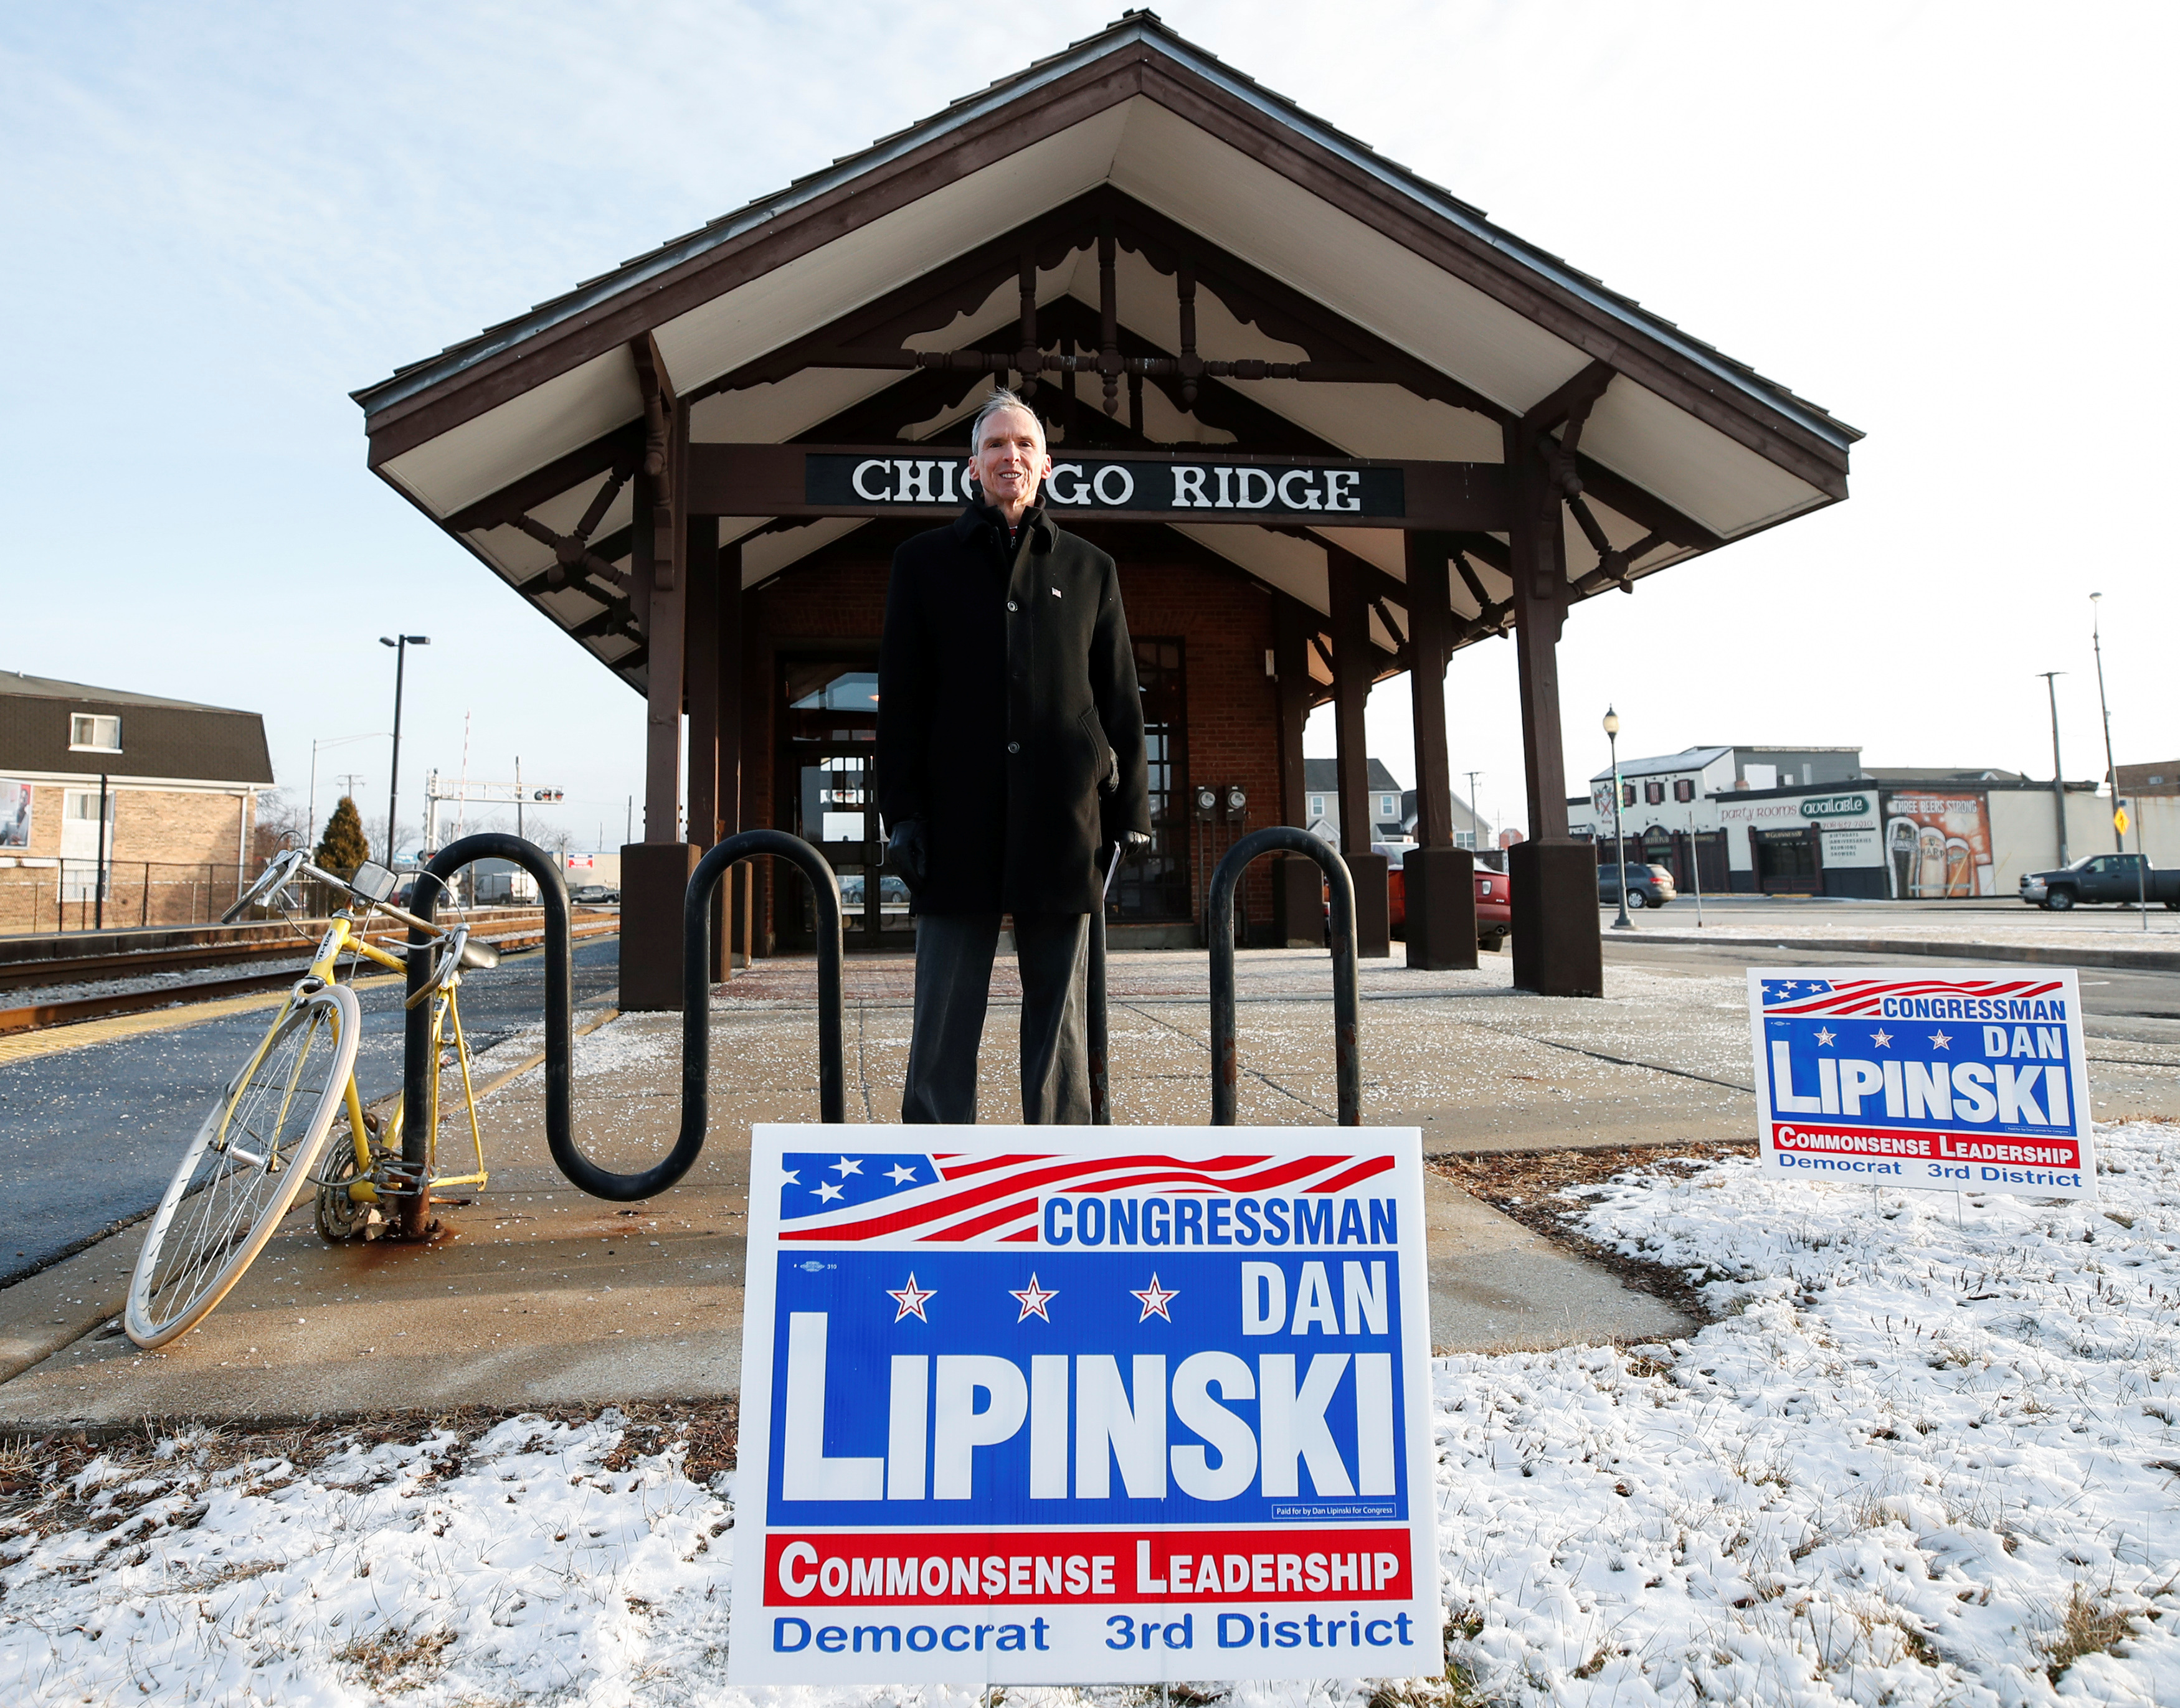 U.S. Congressman Daniel Lipinski poses for a picture after campaigning for re-election at the Chicago Ridge Metra commuter train station in Chicago Ridge, Illinois, U.S. January 25, 2018. Picture taken January 25, 2018. REUTERS/Kamil Krzacznski